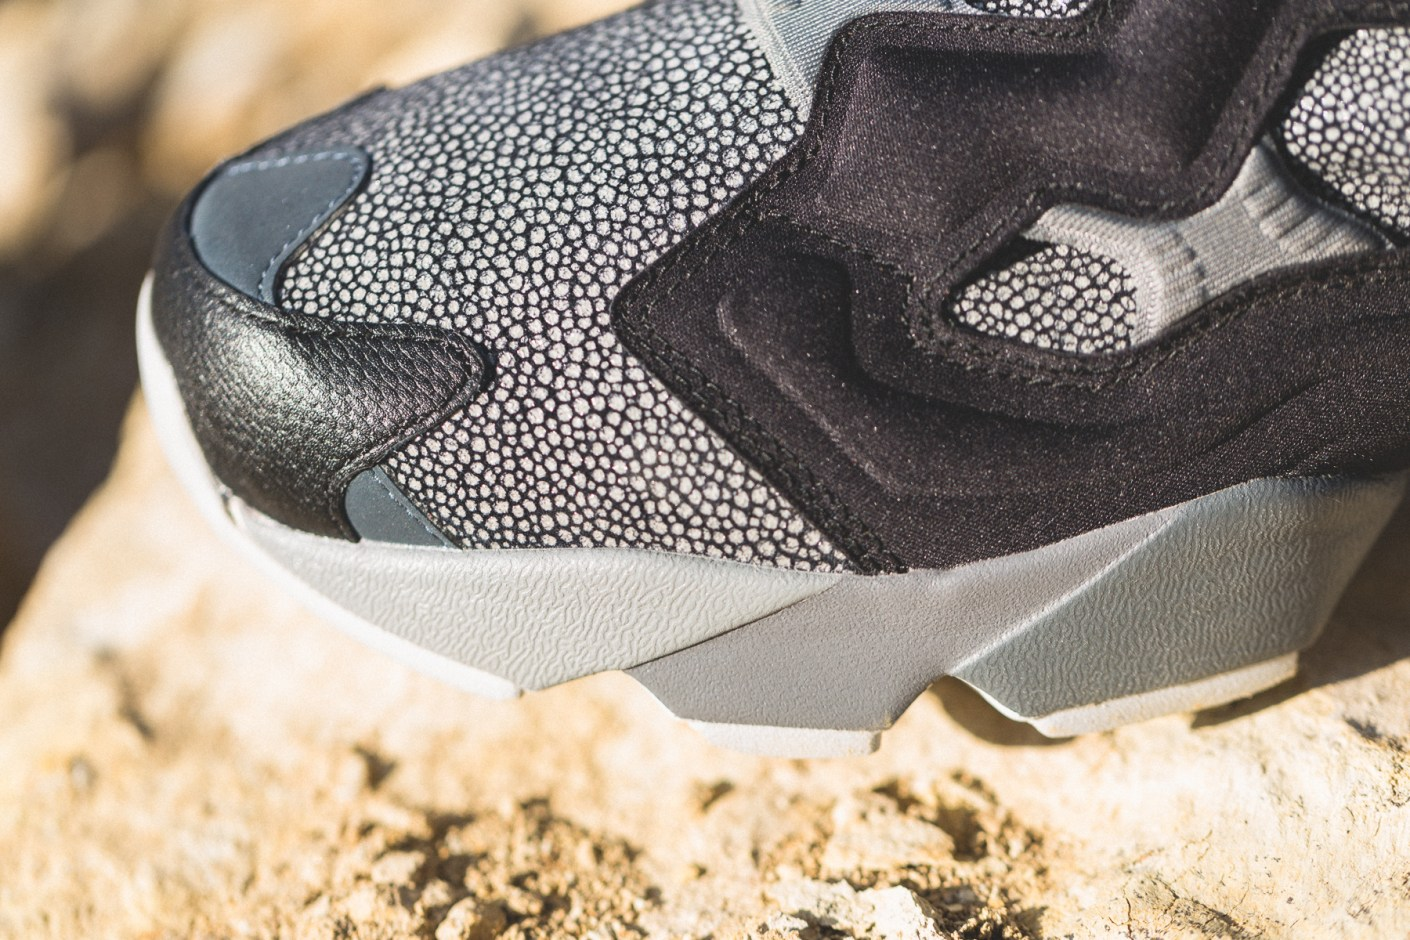 Image of Limited Edt x Hypethetic x Reebok Instapump Fury 20th Anniversary